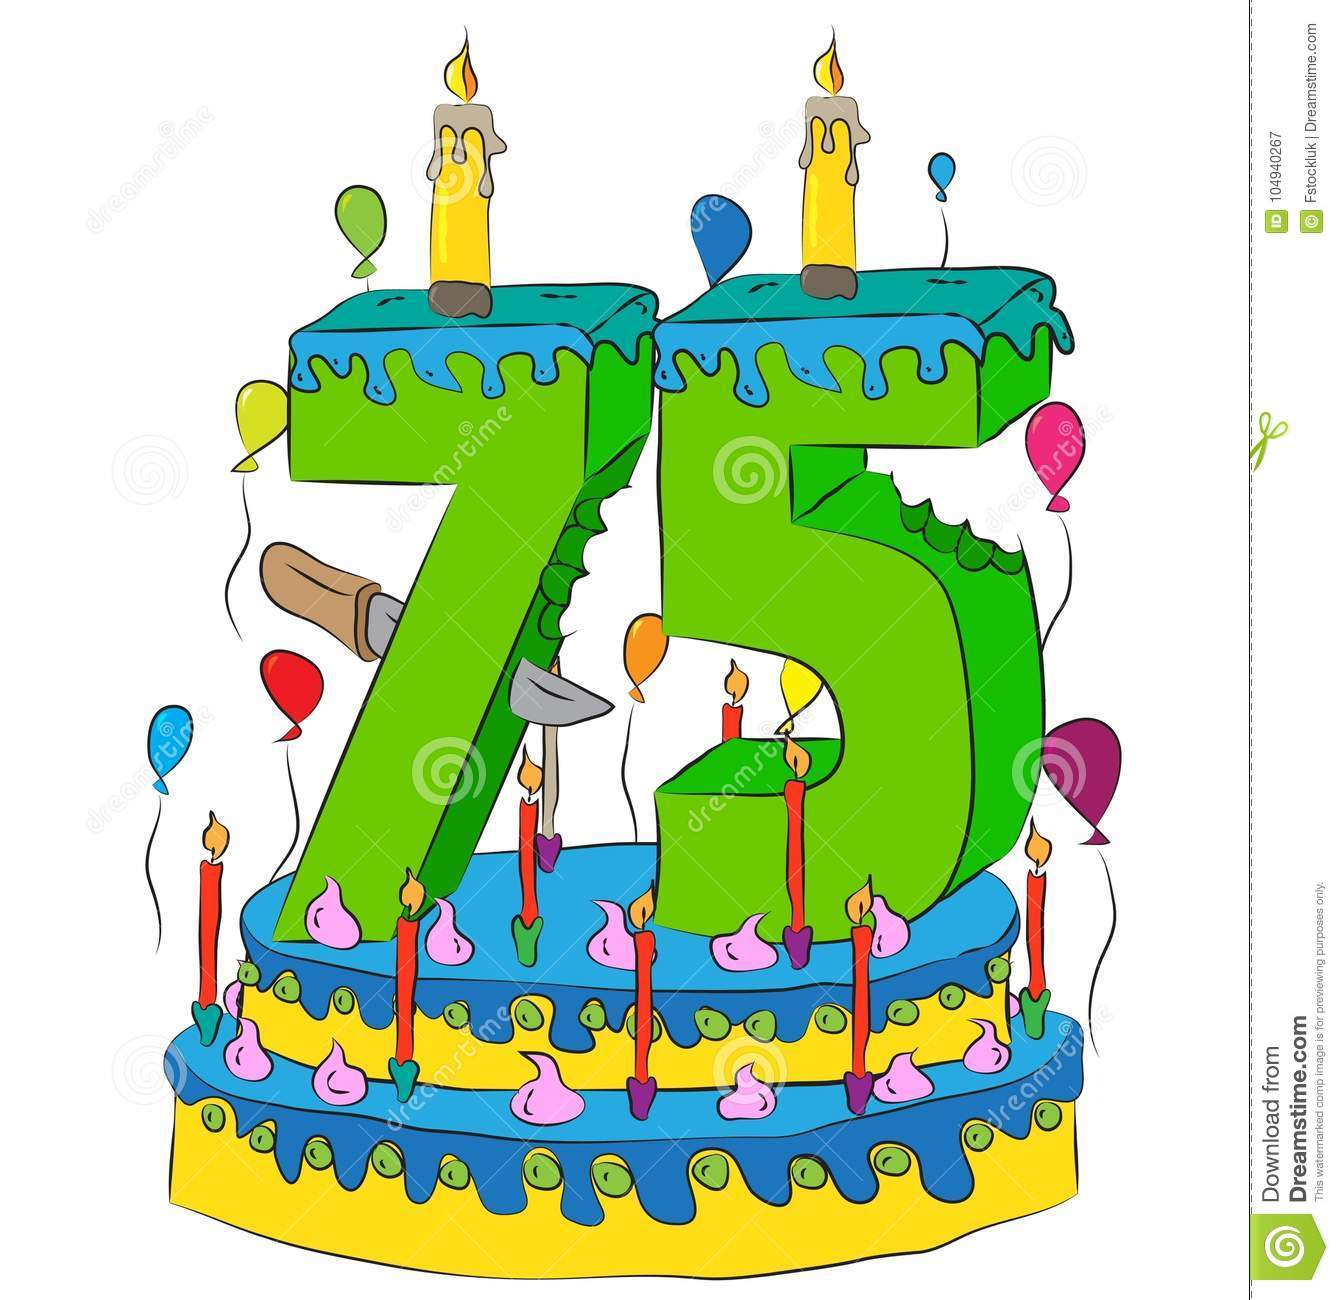 75 Birthday Cake With Number Seventy Five Candle Celebrating Fifth Year Of Life Colorful Balloons And Chocolate Frosting